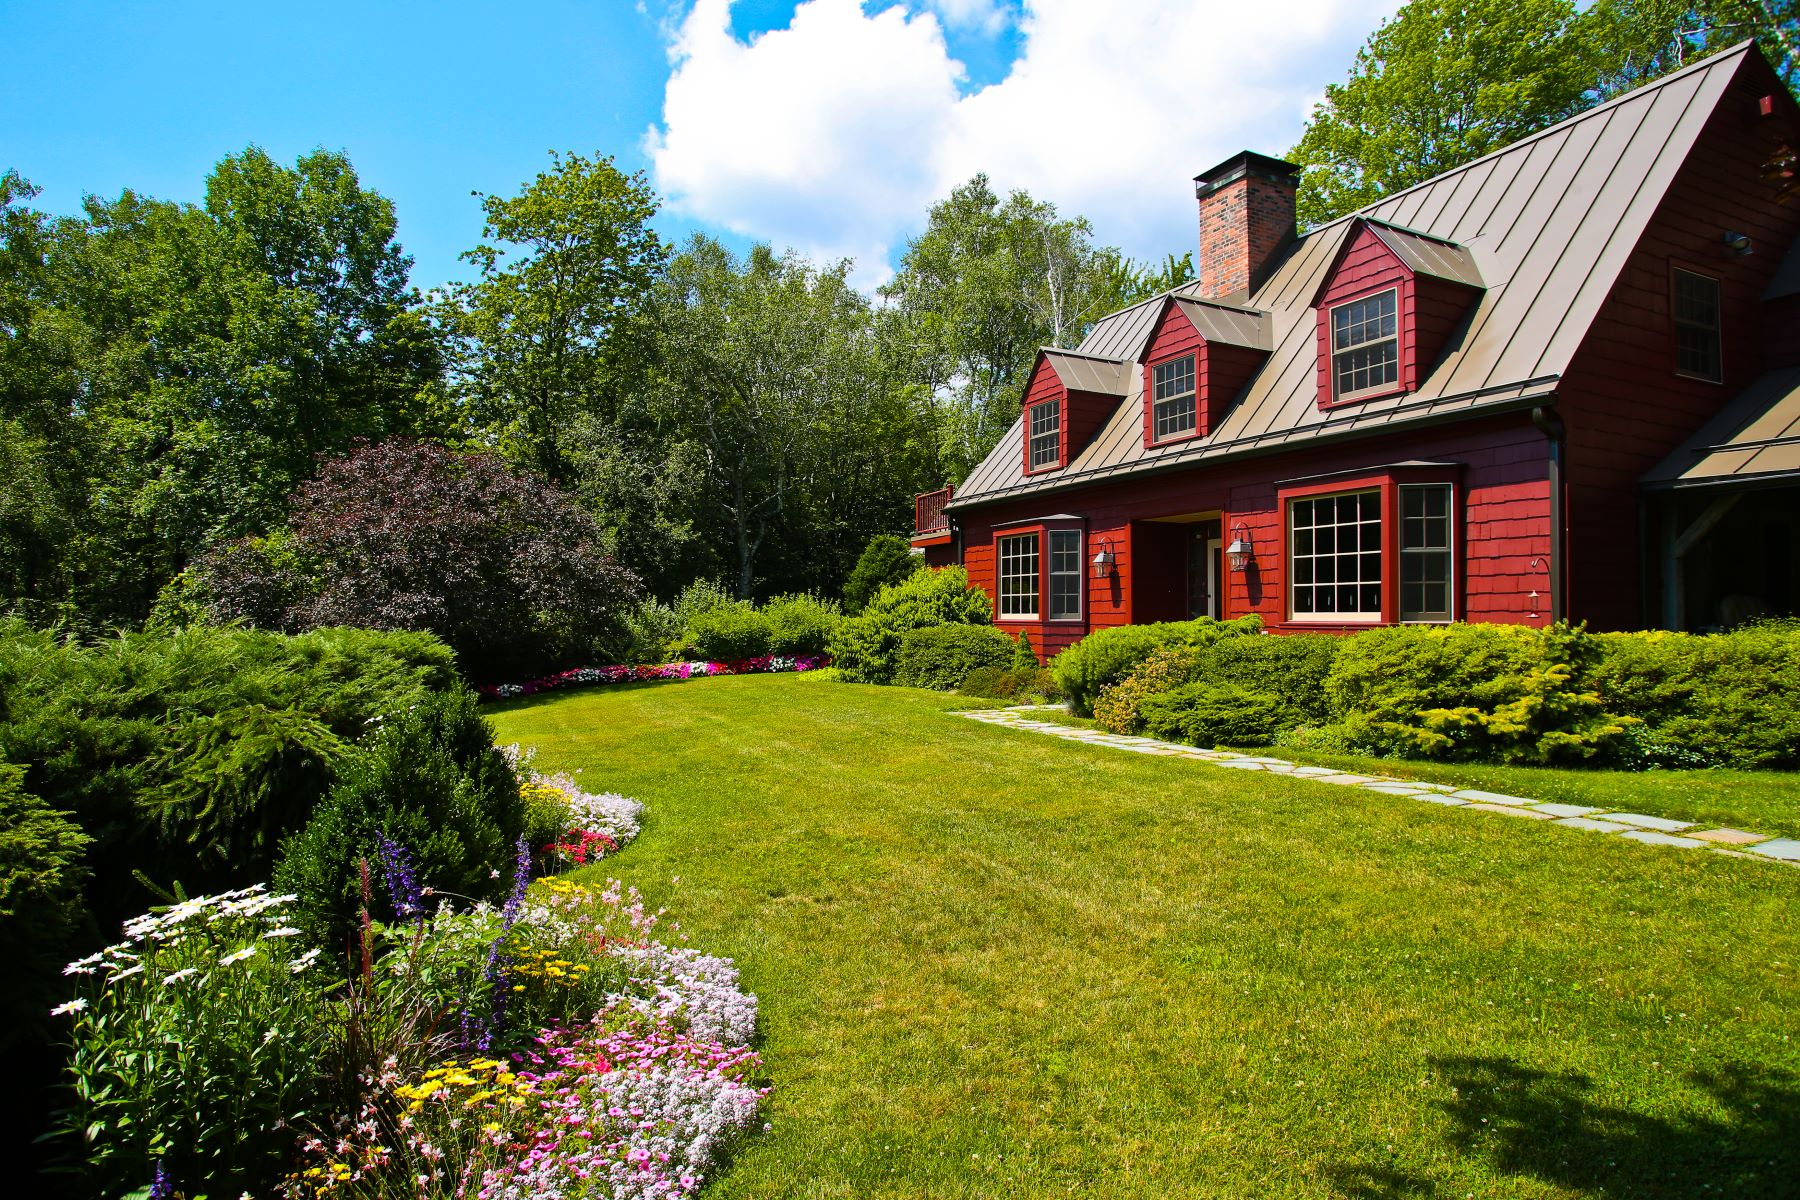 Casa Unifamiliar por un Venta en 100 Acre Family Compound: Stream, Ponds, Stables with Guesthouse 759 Hancock Rd Williamstown, Massachusetts, 01267 Estados Unidos